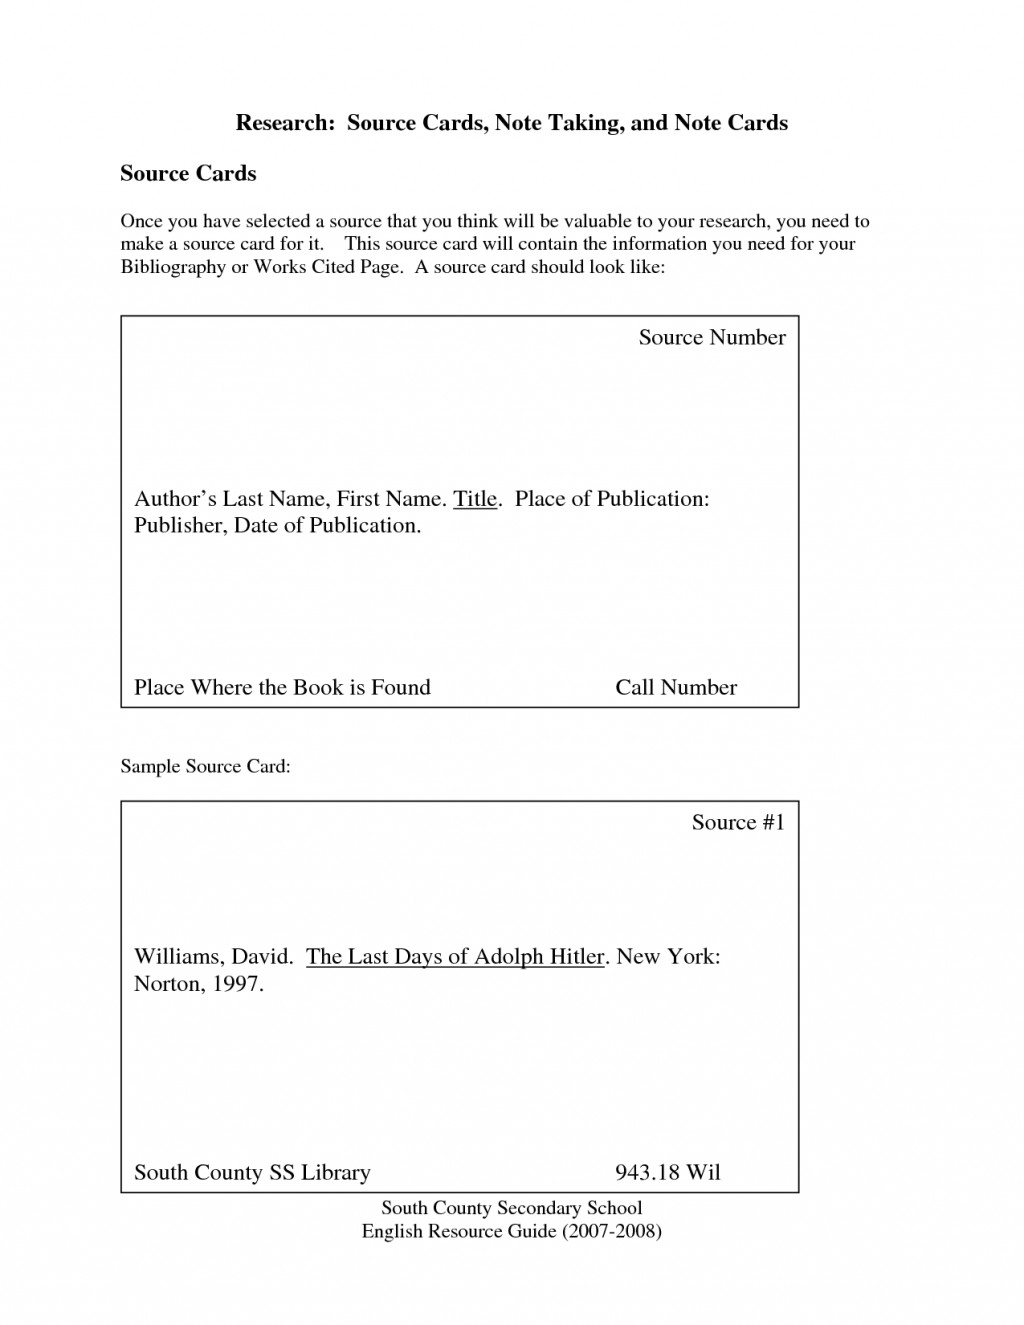 003 Note Cards Template For Research Paper Card Templates 442160 Astounding Example Of Notecards Large